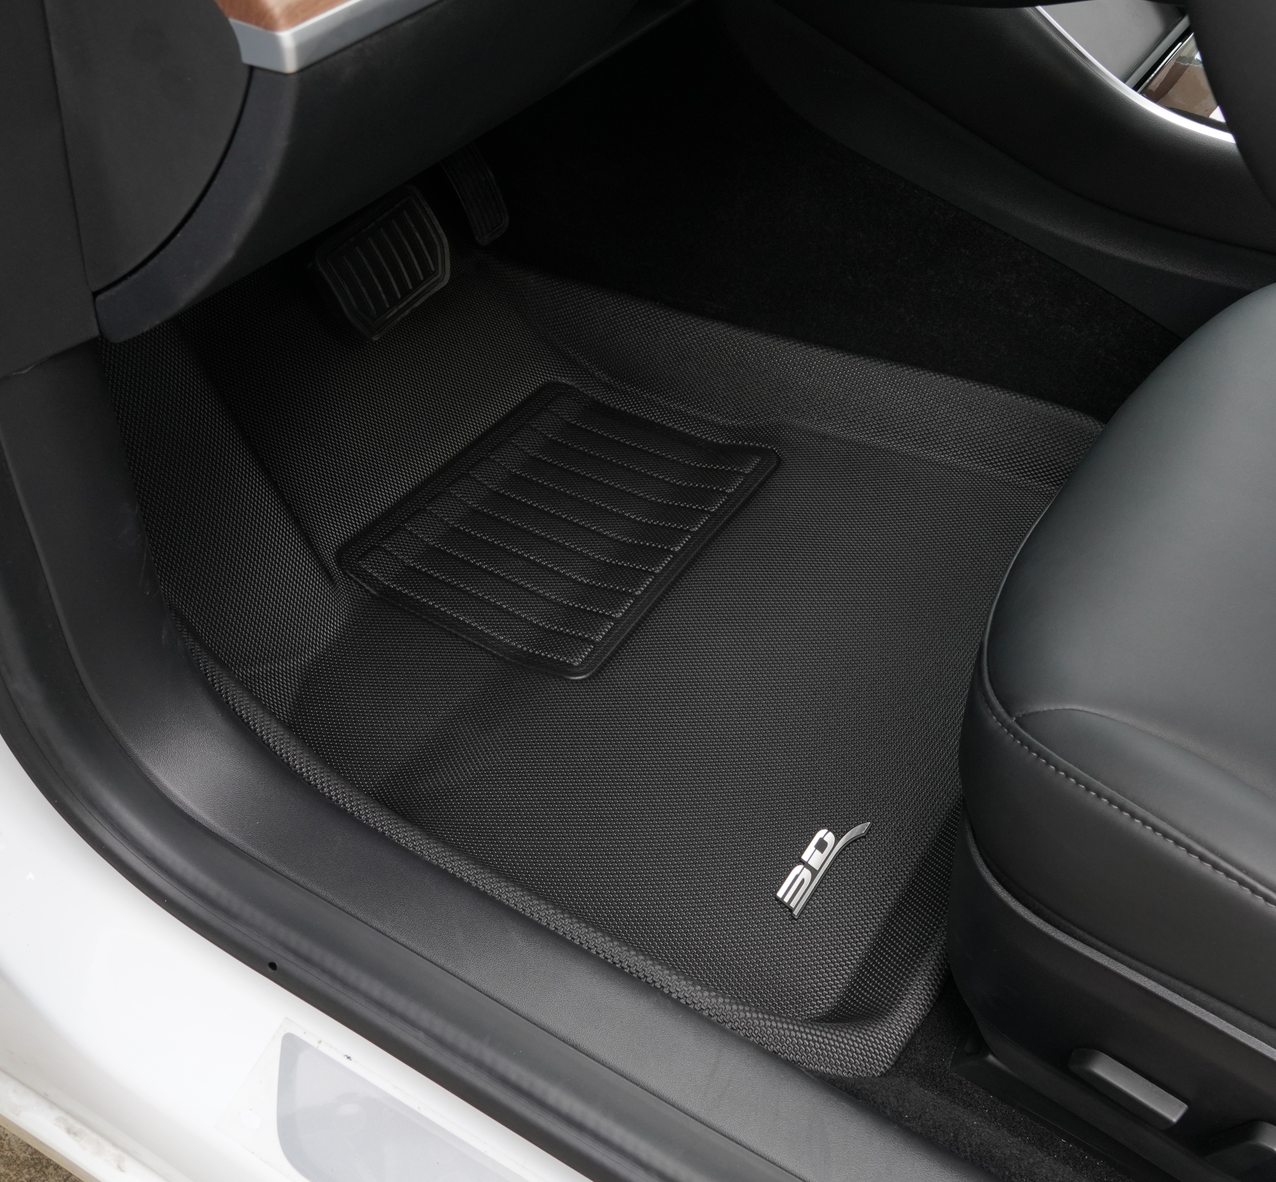 MAXpider Custom Fit All-Weather Floor Liners for Tesla Model 3